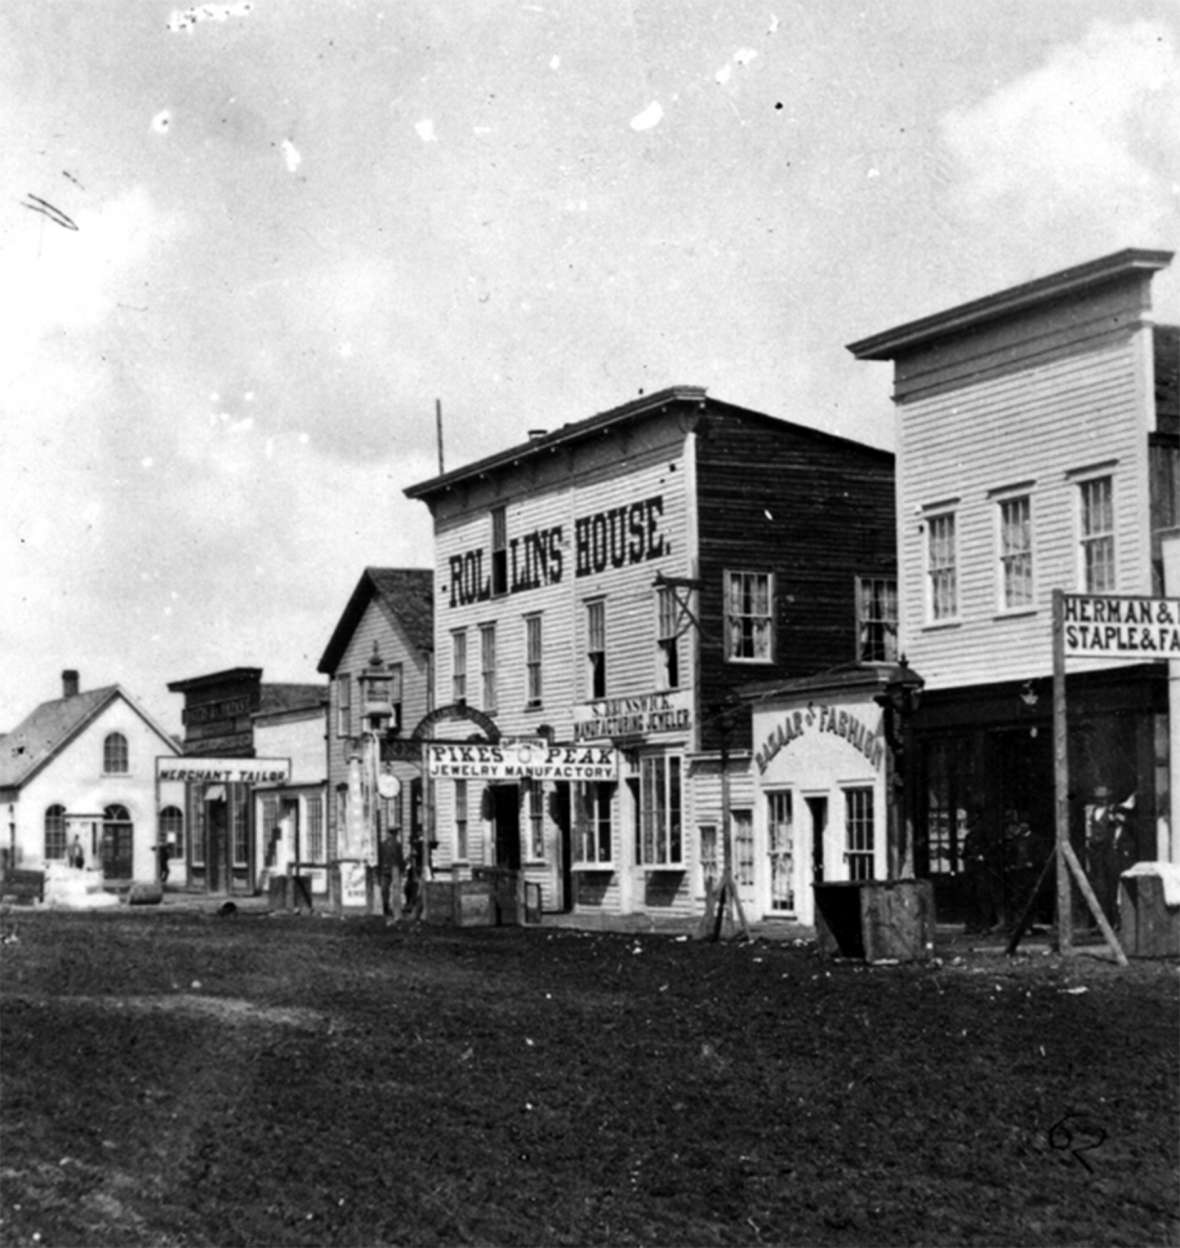 Dickinson lectured to a crowd of 250 the second time she visted Cheyenne, in September 1869. The event may have been at the Rollins House hotel, where the Territorial Legislature met the following month—and two months later voted for votes for women. W.H. Jackson photo.